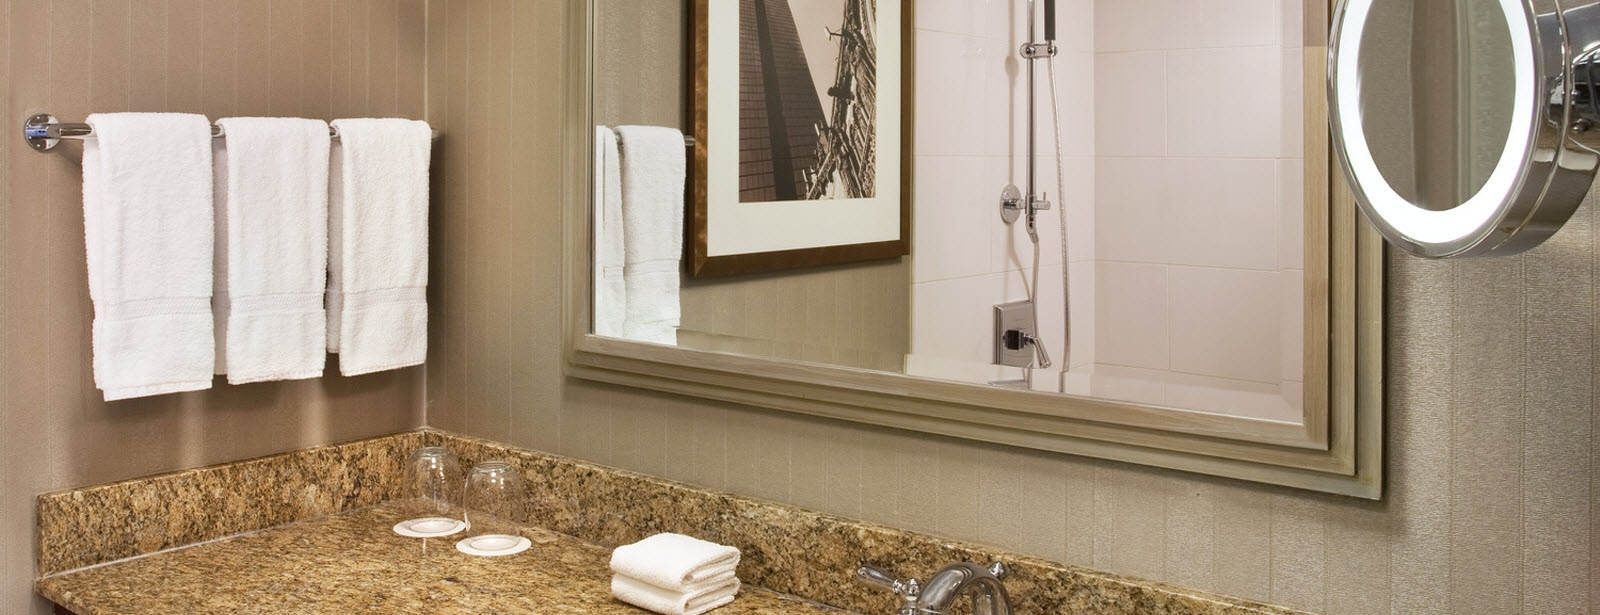 The Westin Copley Place, Boston traditional guest room bathroom